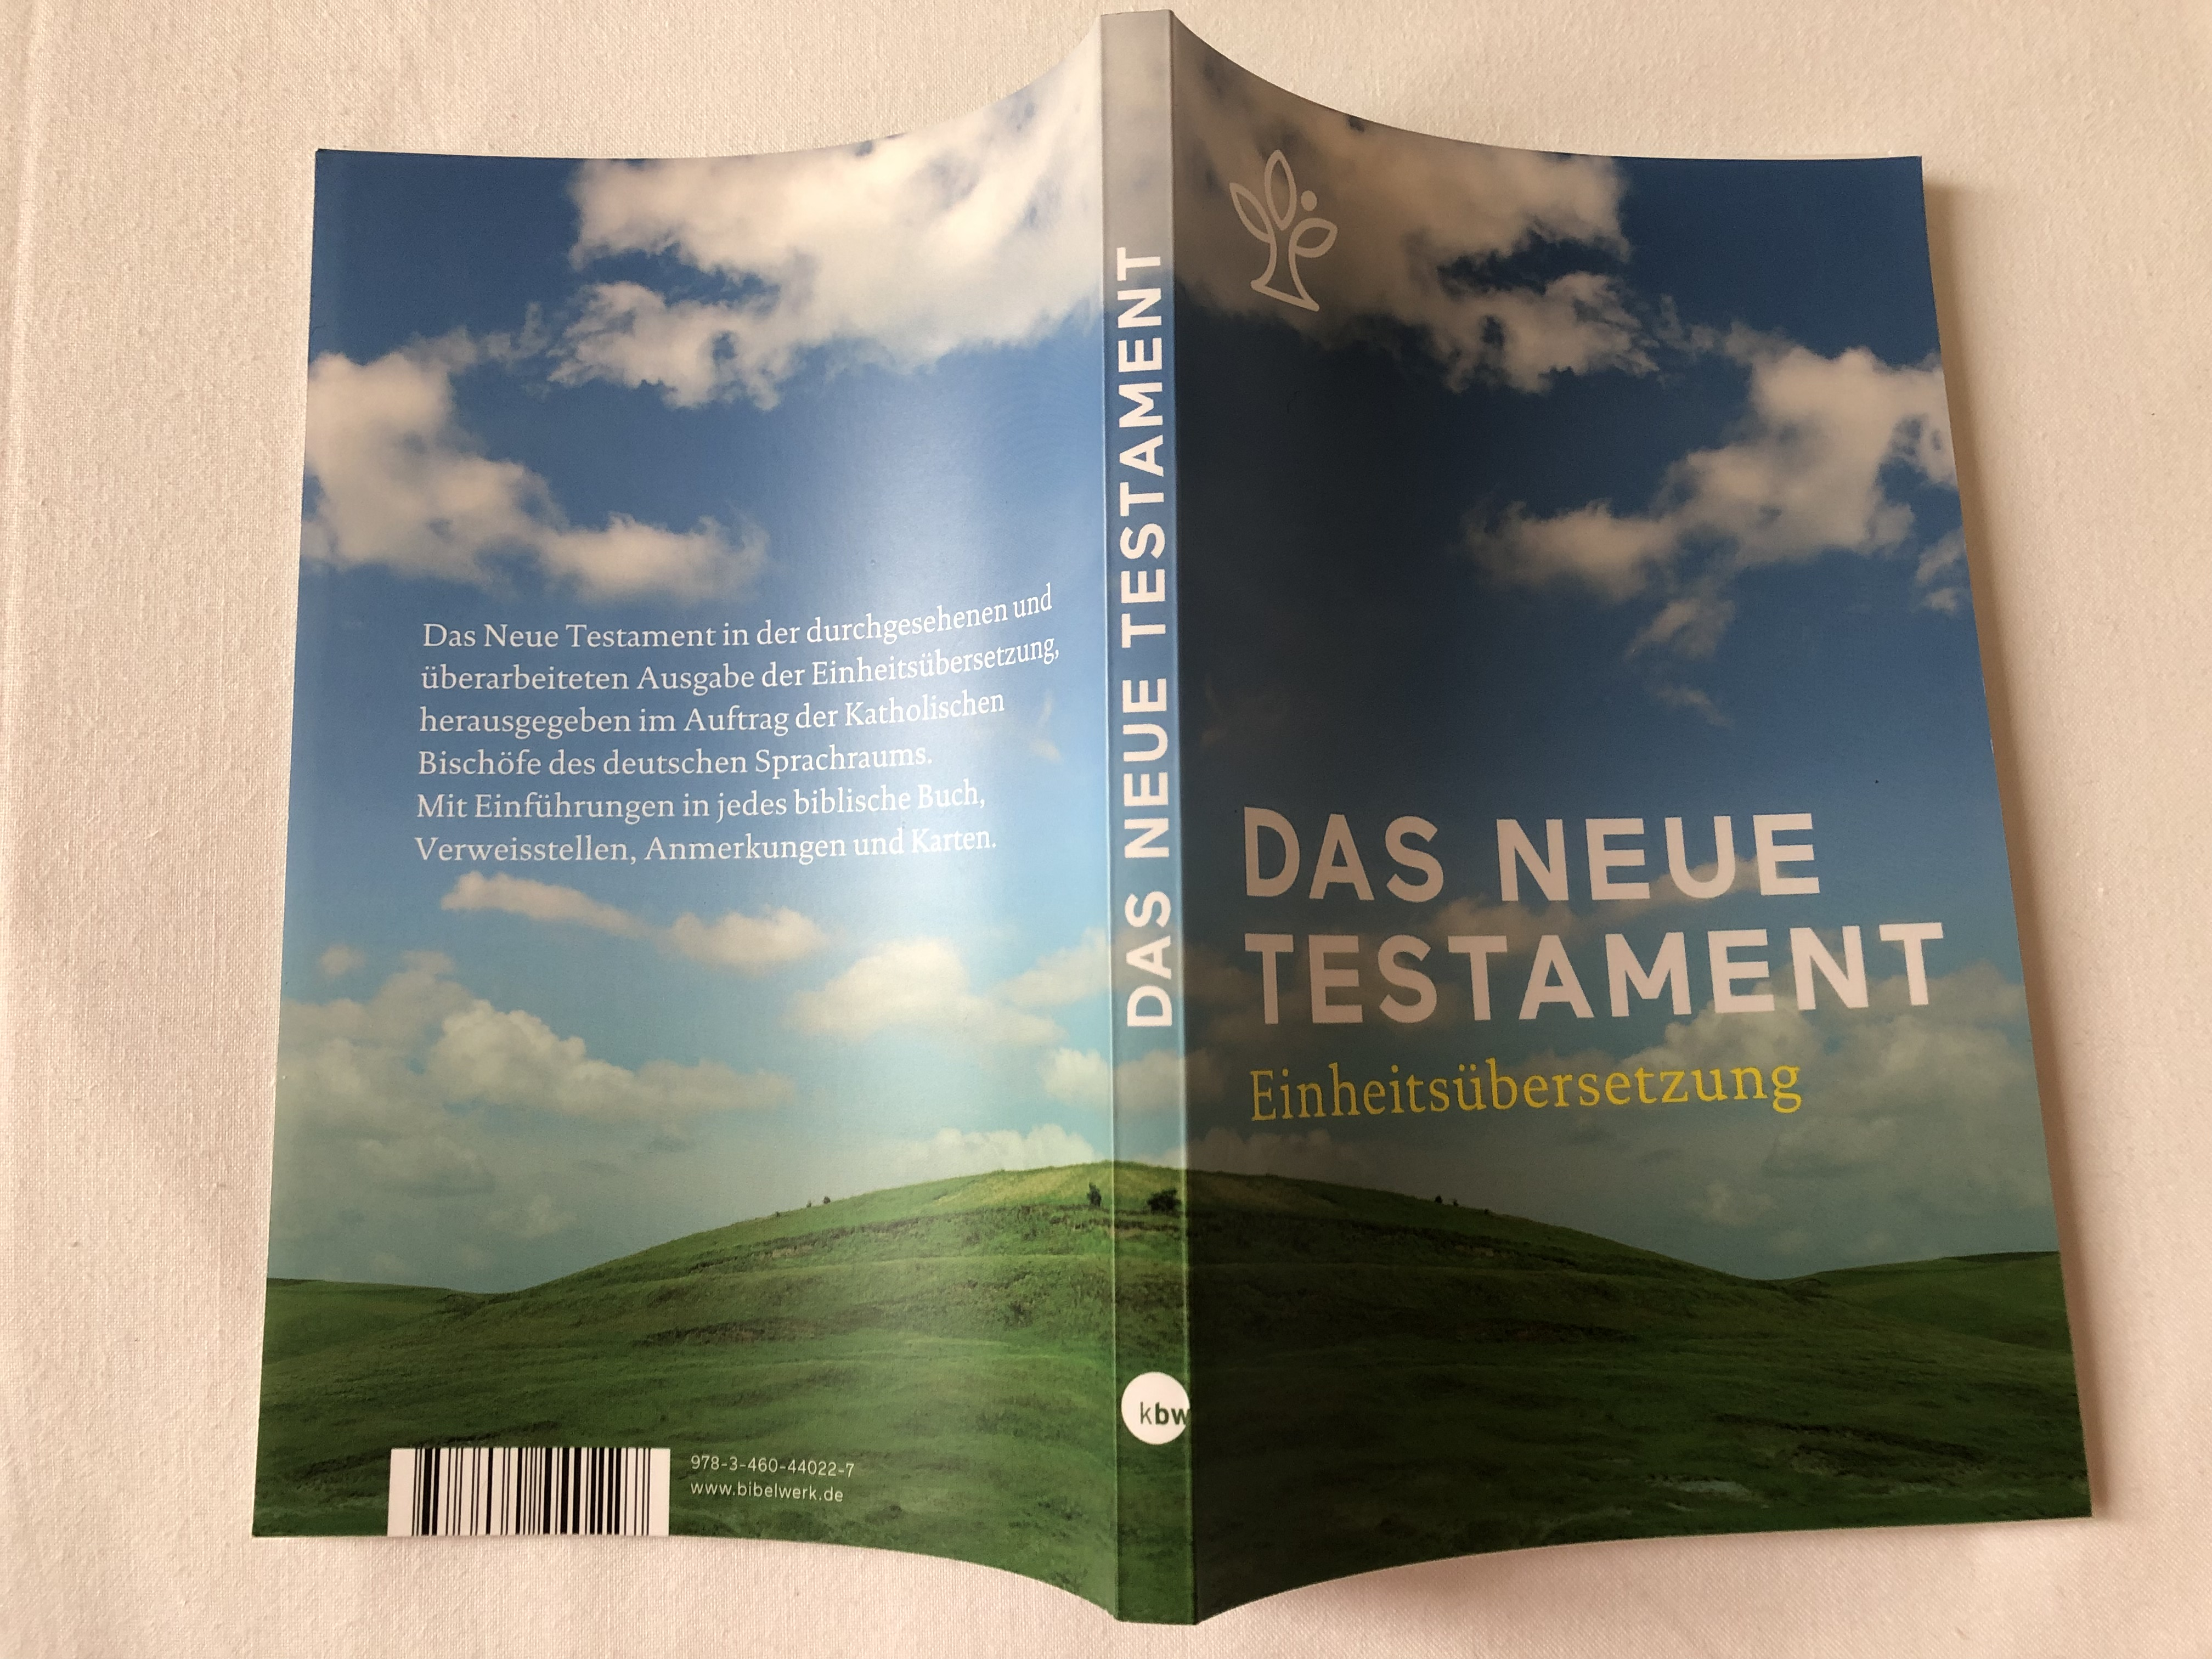 das-neue-testament-einheits-bersetzung-2.auflage-the-new-testament-in-german-unitary-translation-2nd-edition-book-introductions-references-notes-and-maps-paperback-2018-kbw-2-.jpg